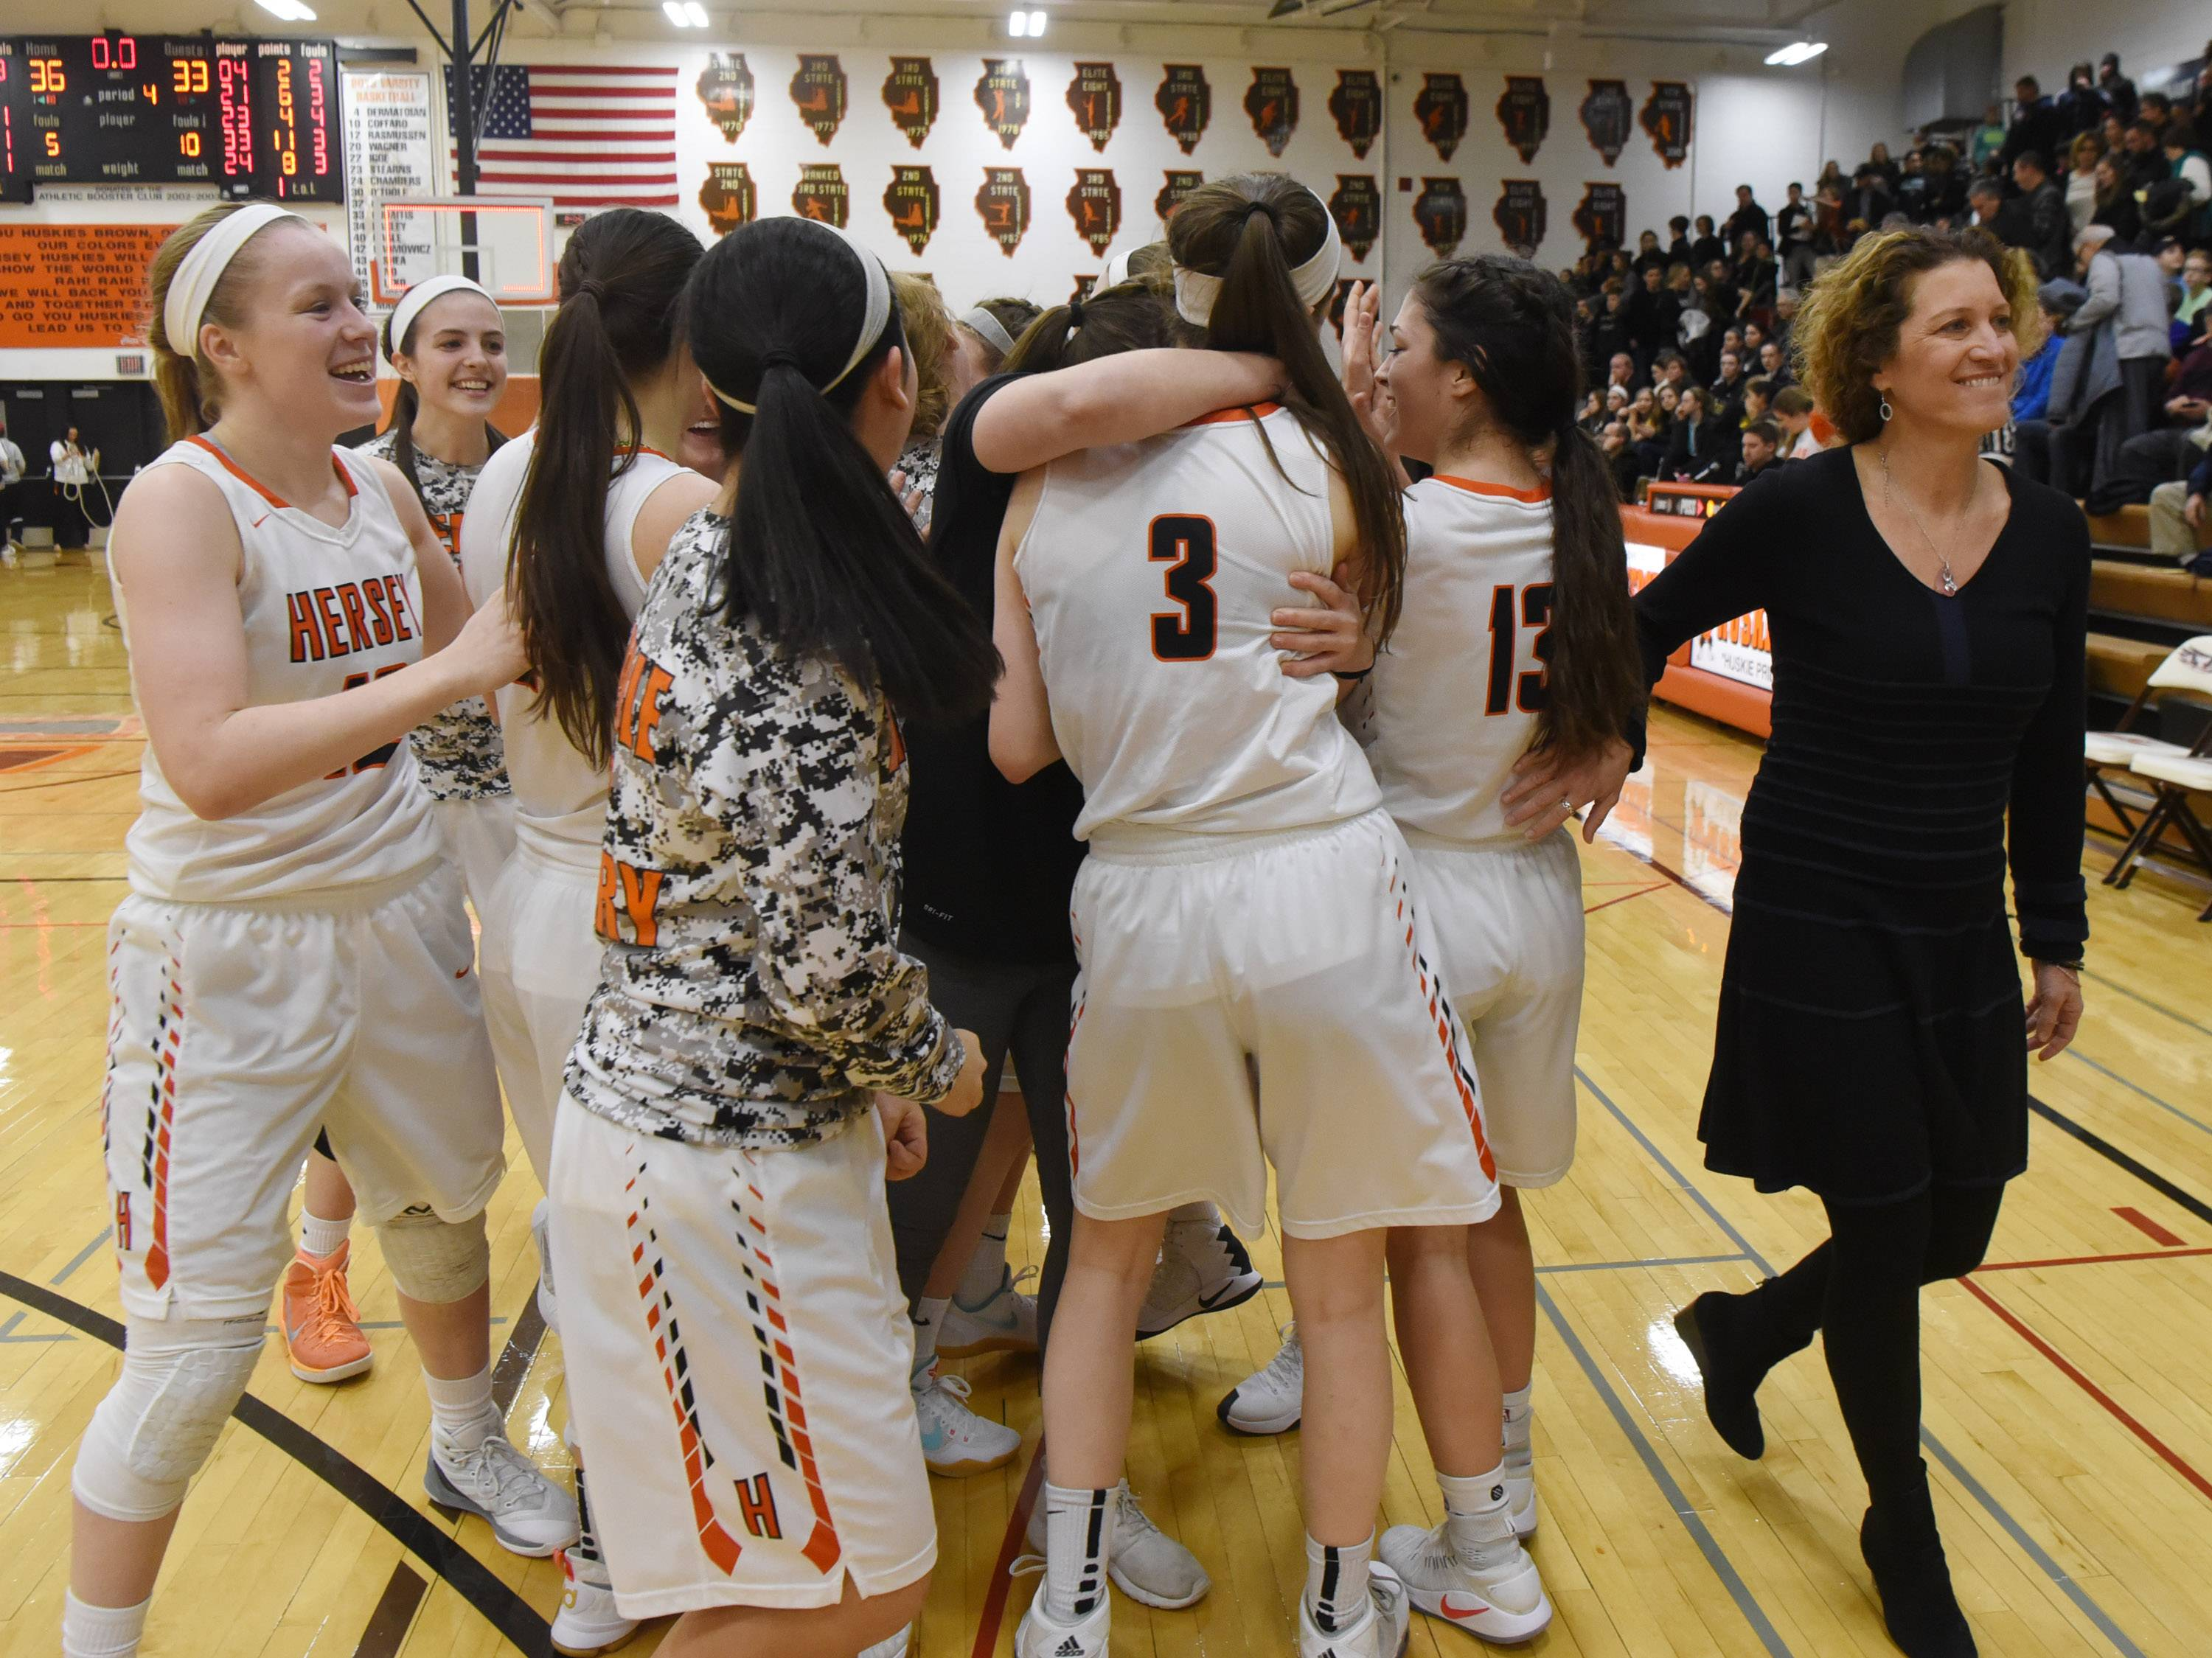 Hersey players and coach Mary Fendley celebrate their 36-33 victory over Fremd during the Mid-Suburban League championship game in Arlington Heights on Wednesday.